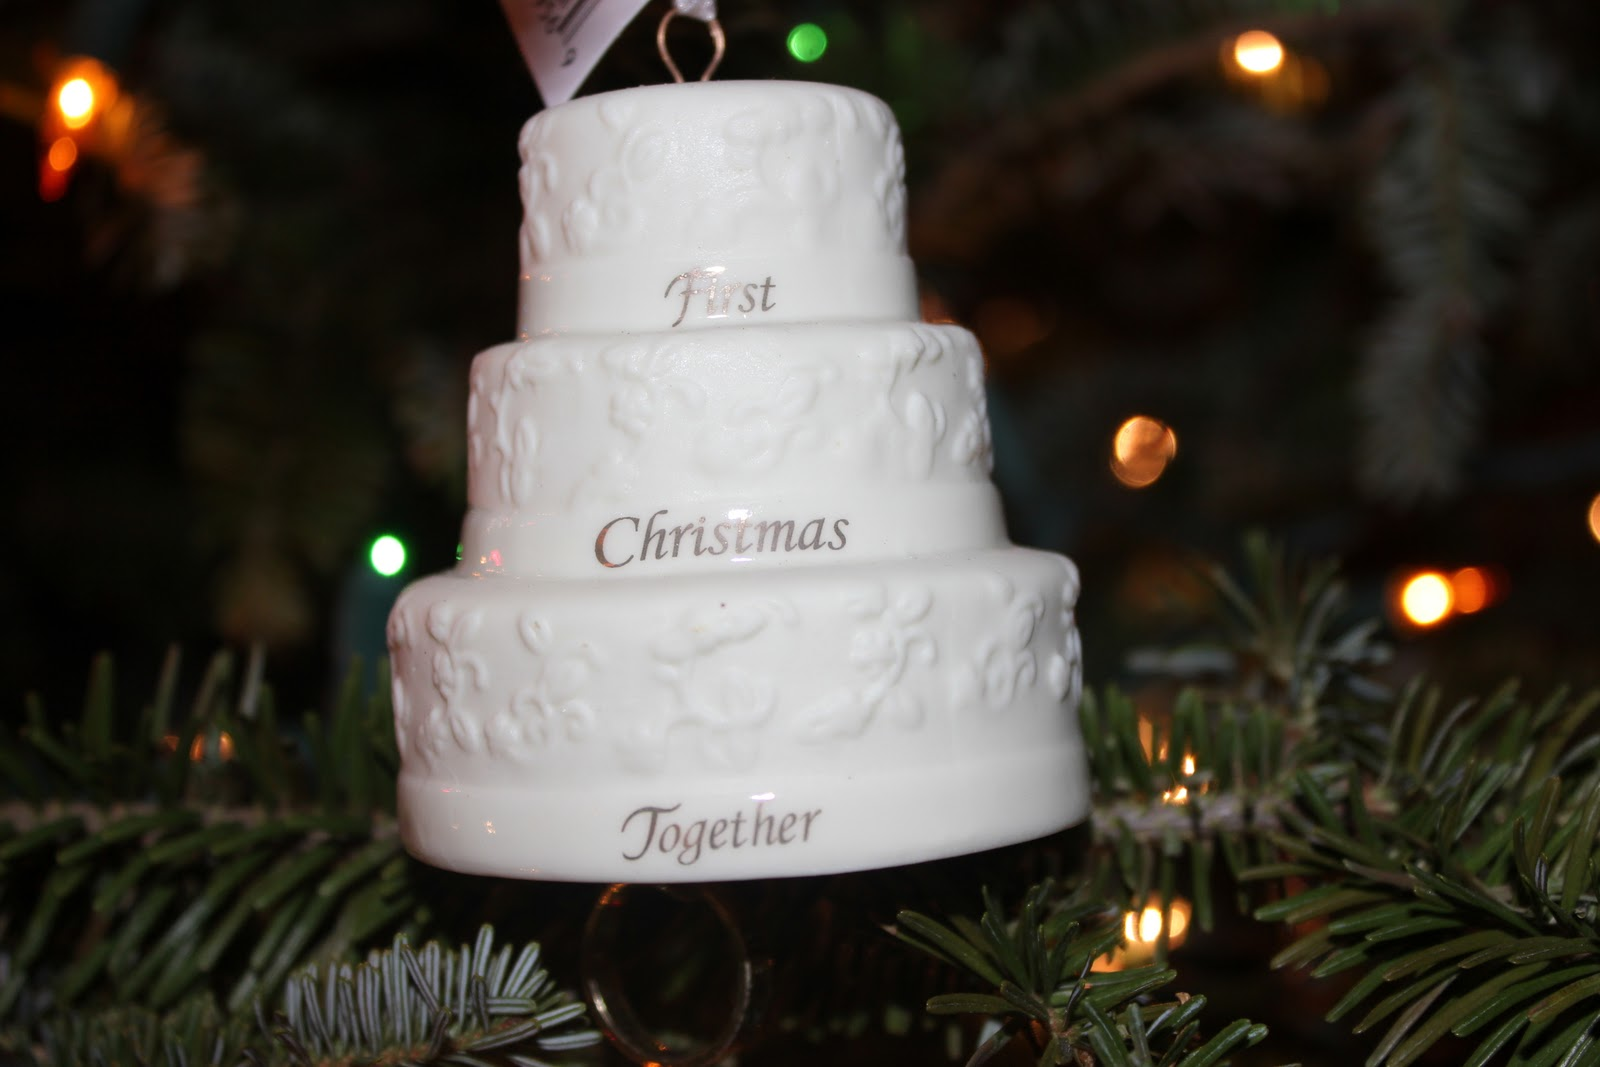 First wedding ornament - This Ornament We Got From Mike And Kerry Not Only Is It Personalized With Our Names And Our Initial But It Has Three Lines From Our First Dance Song